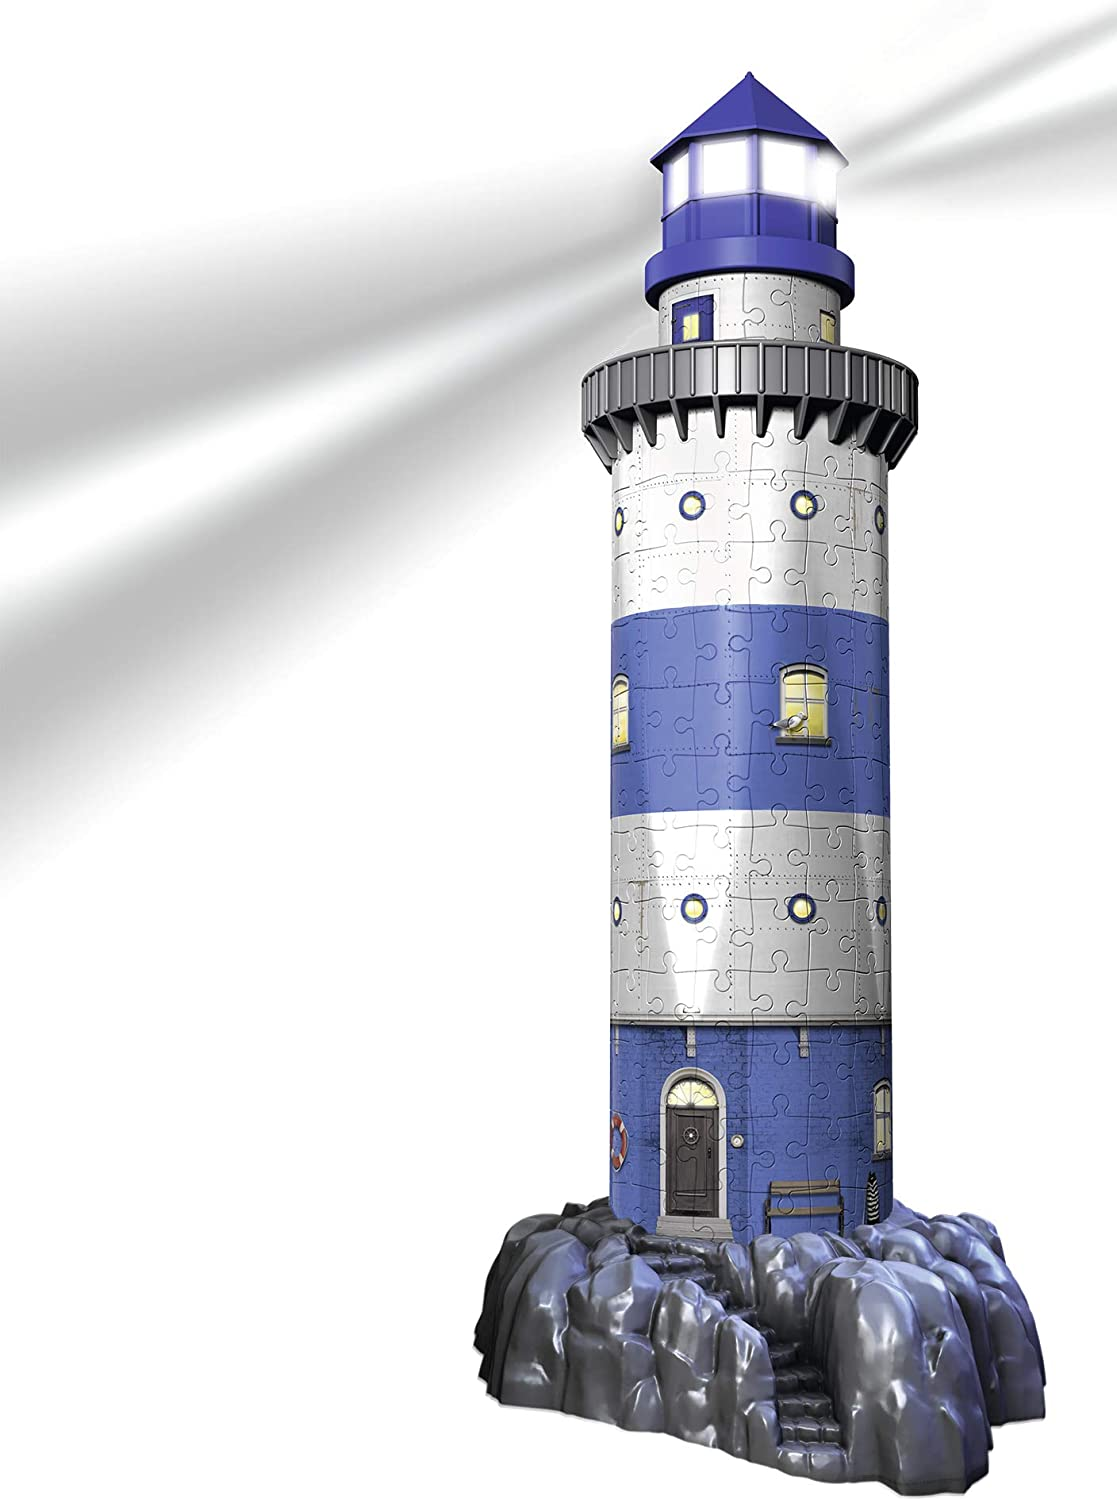 Ravensburger Lighthouse - Night Edition - 216 Piece 3D Jigsaw Puzzle for Kids and Adults - Easy Click Technology Means Pieces Fit Together Perfectly 12577